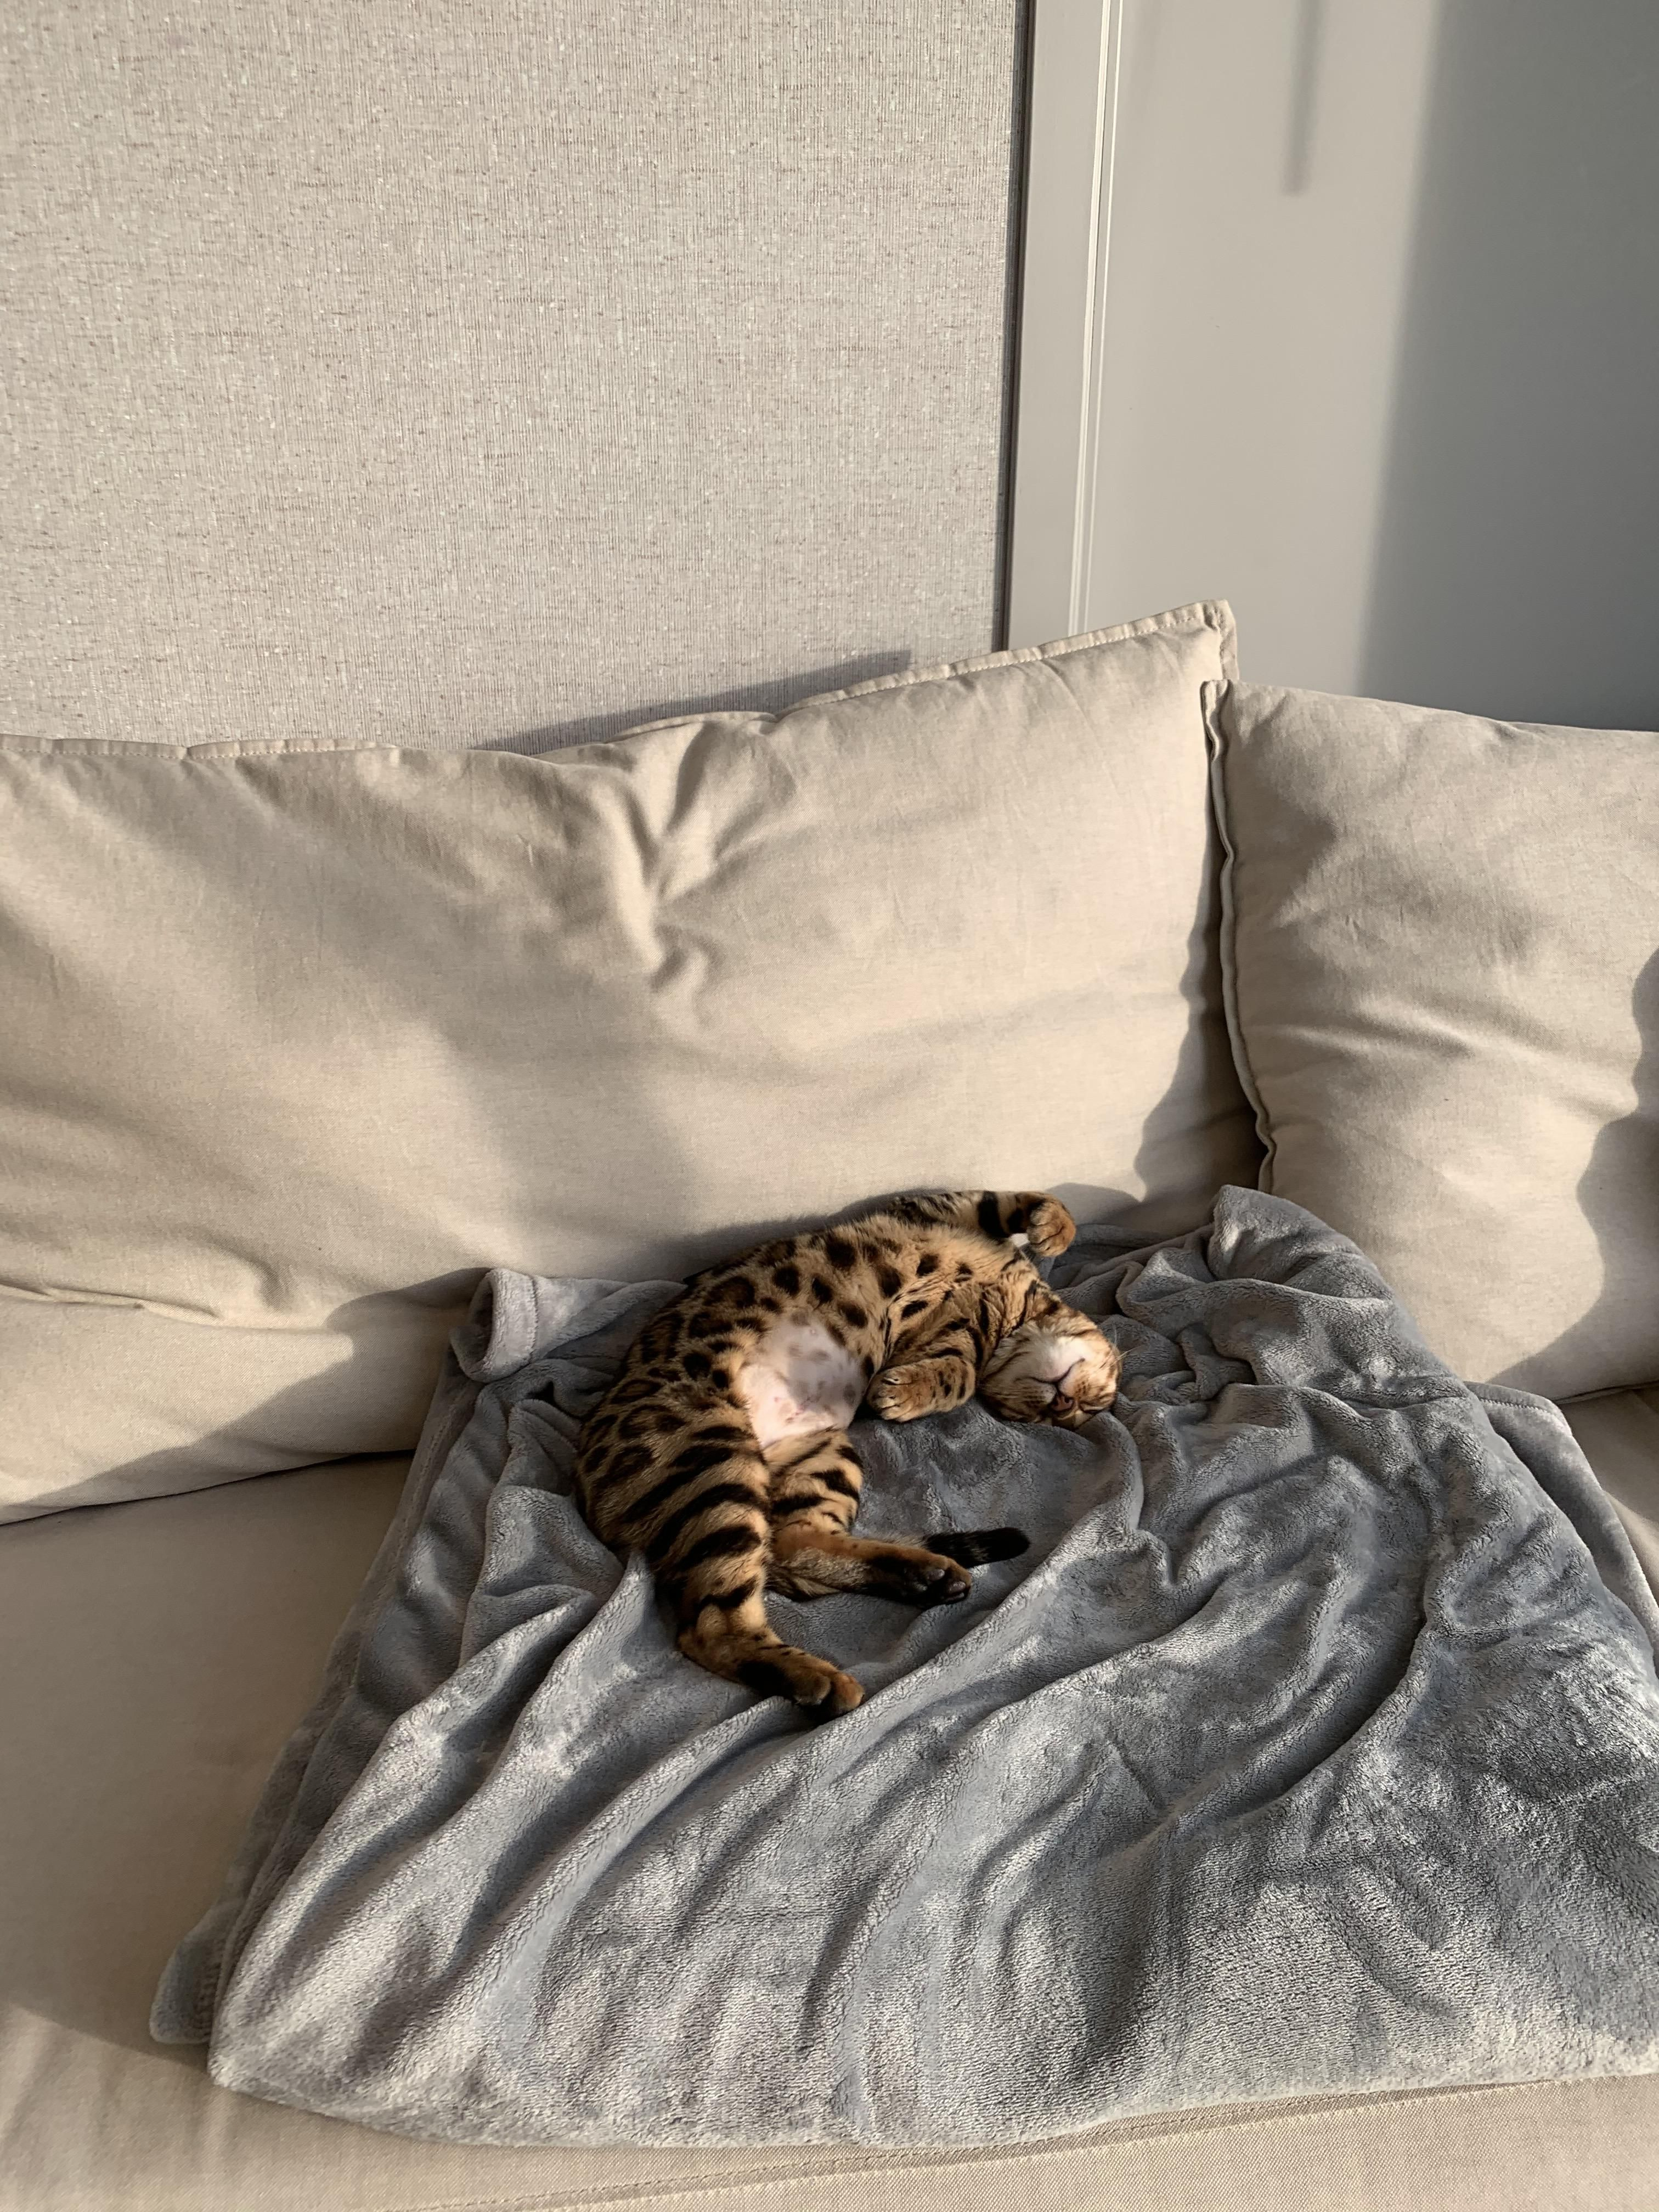 Any Experience With A 3 Months Old Of A Different Breed With Your Bengal Kitten 6 Months Old Ish Did They Get Along Well Advice Bengal Kitten 6 Month Olds Bengal